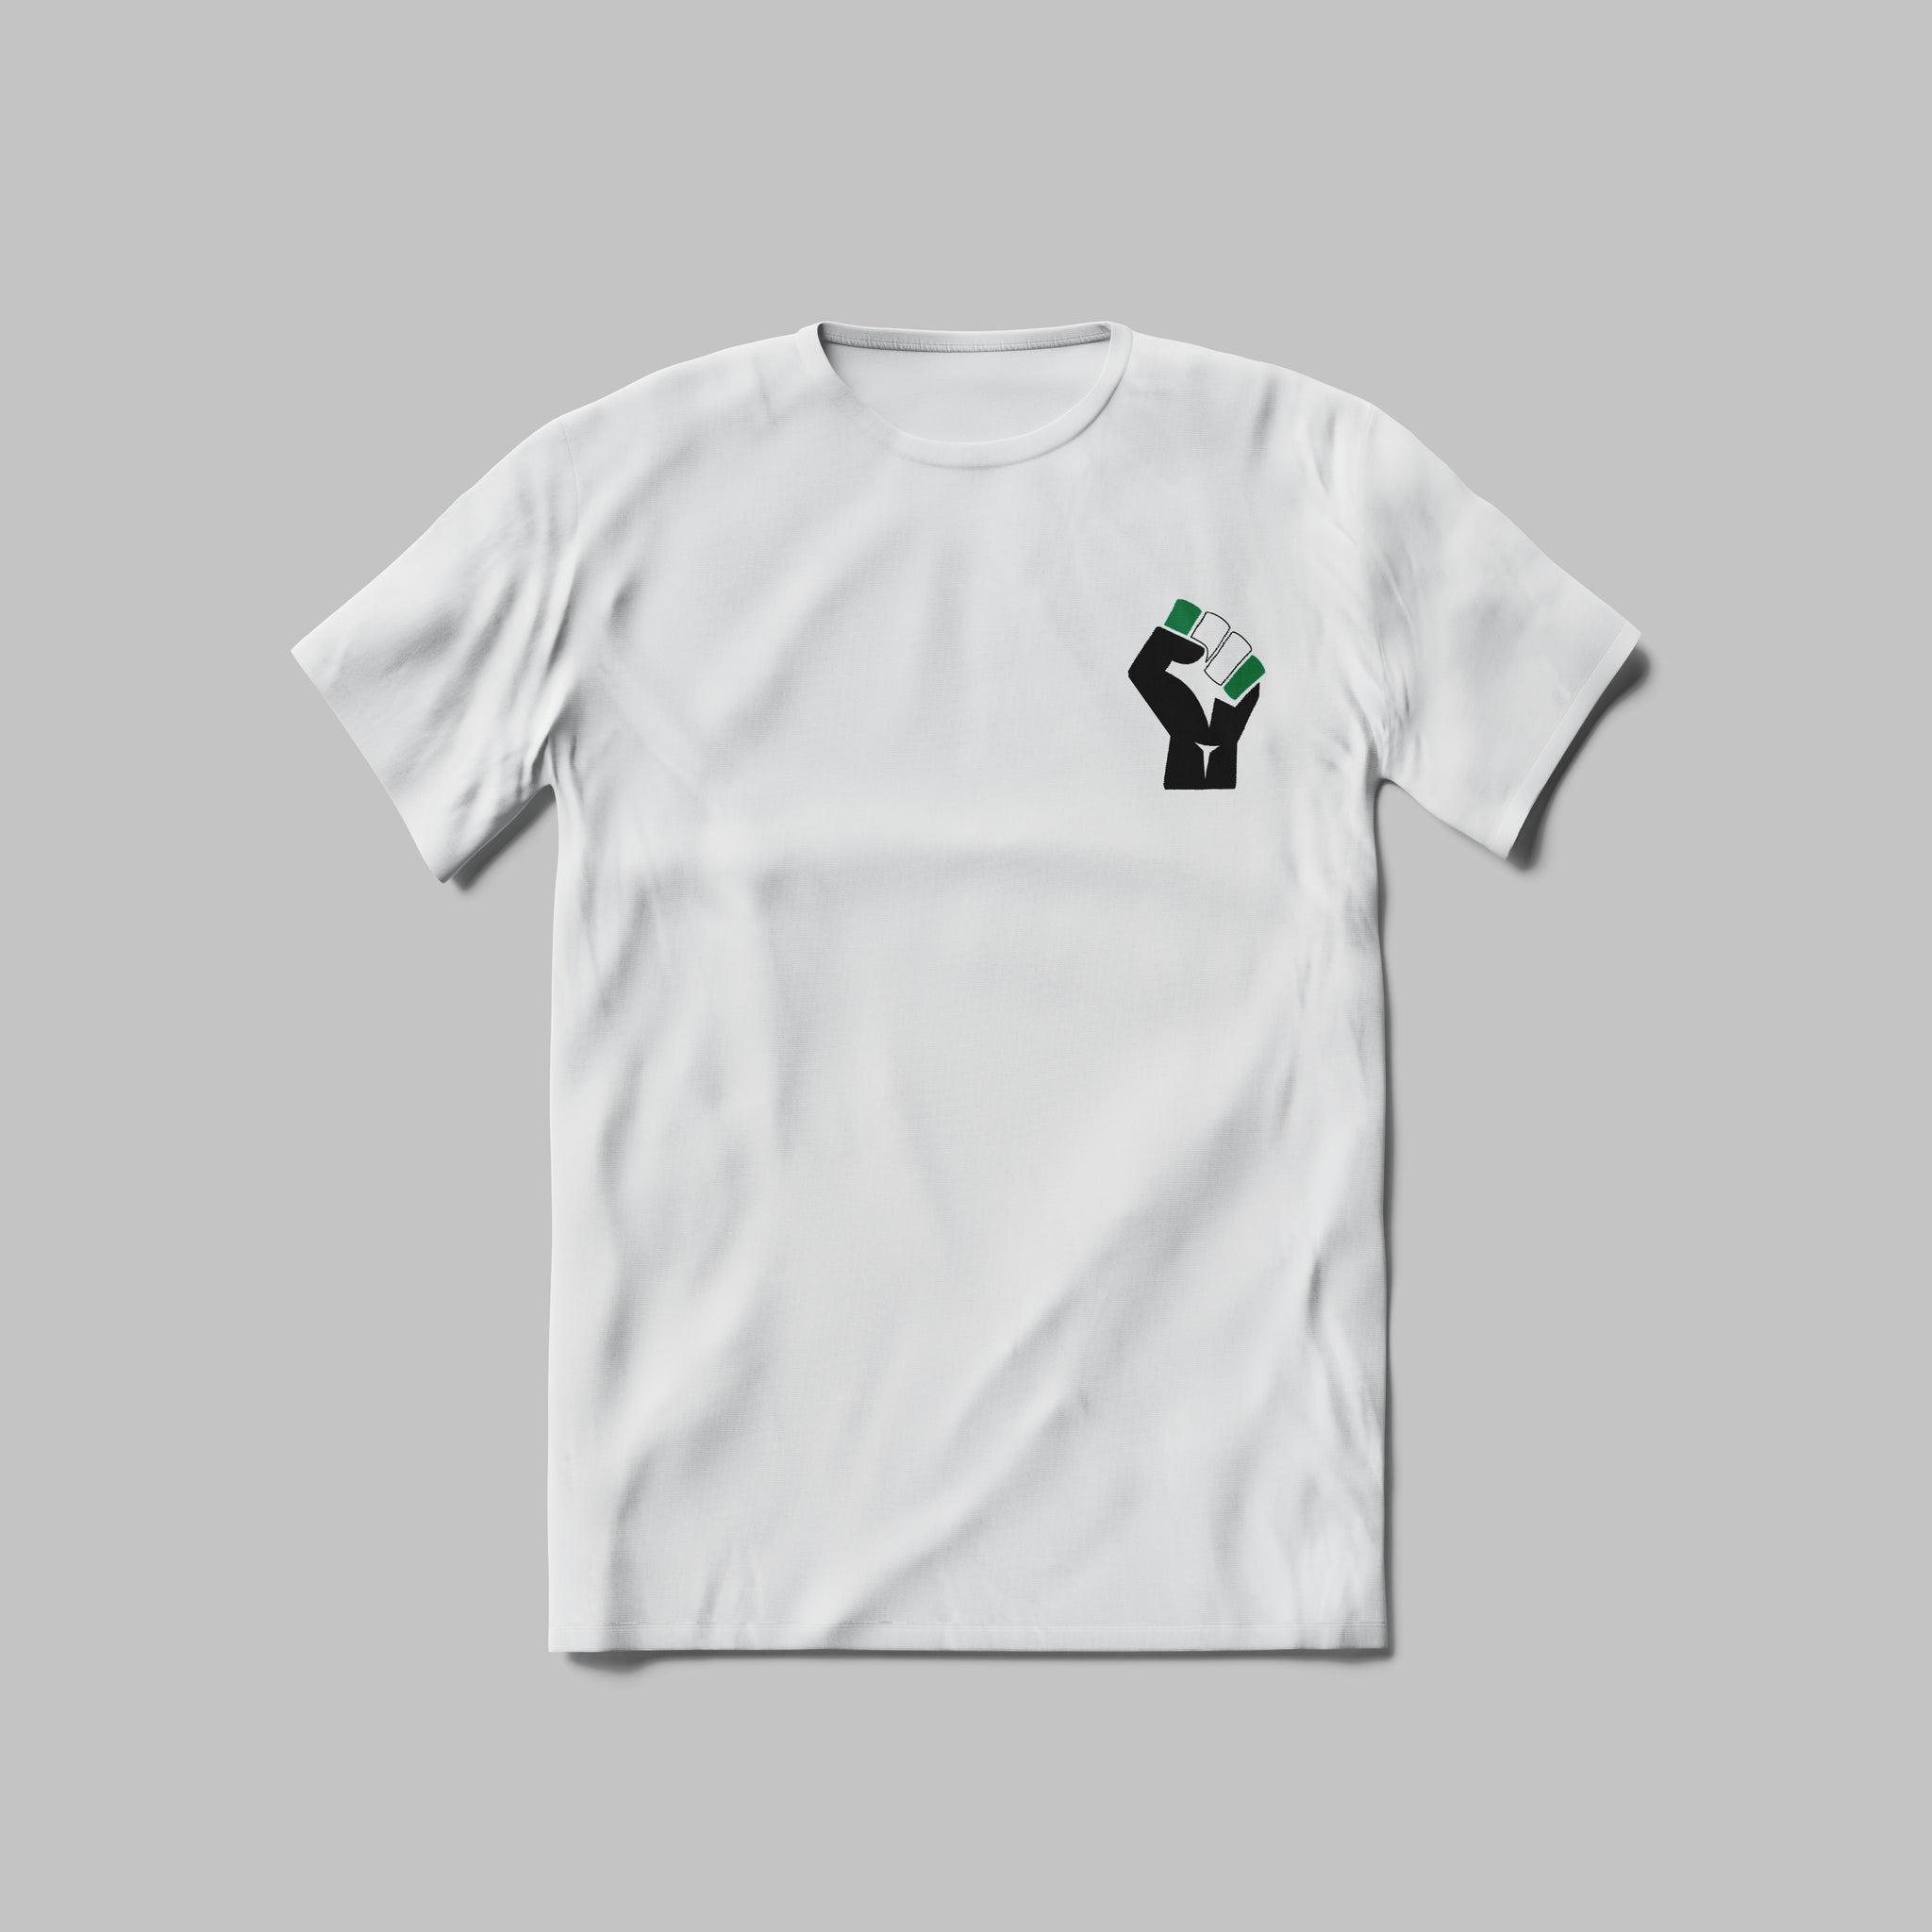 Nigeria Power Shirt - Artric Clothing